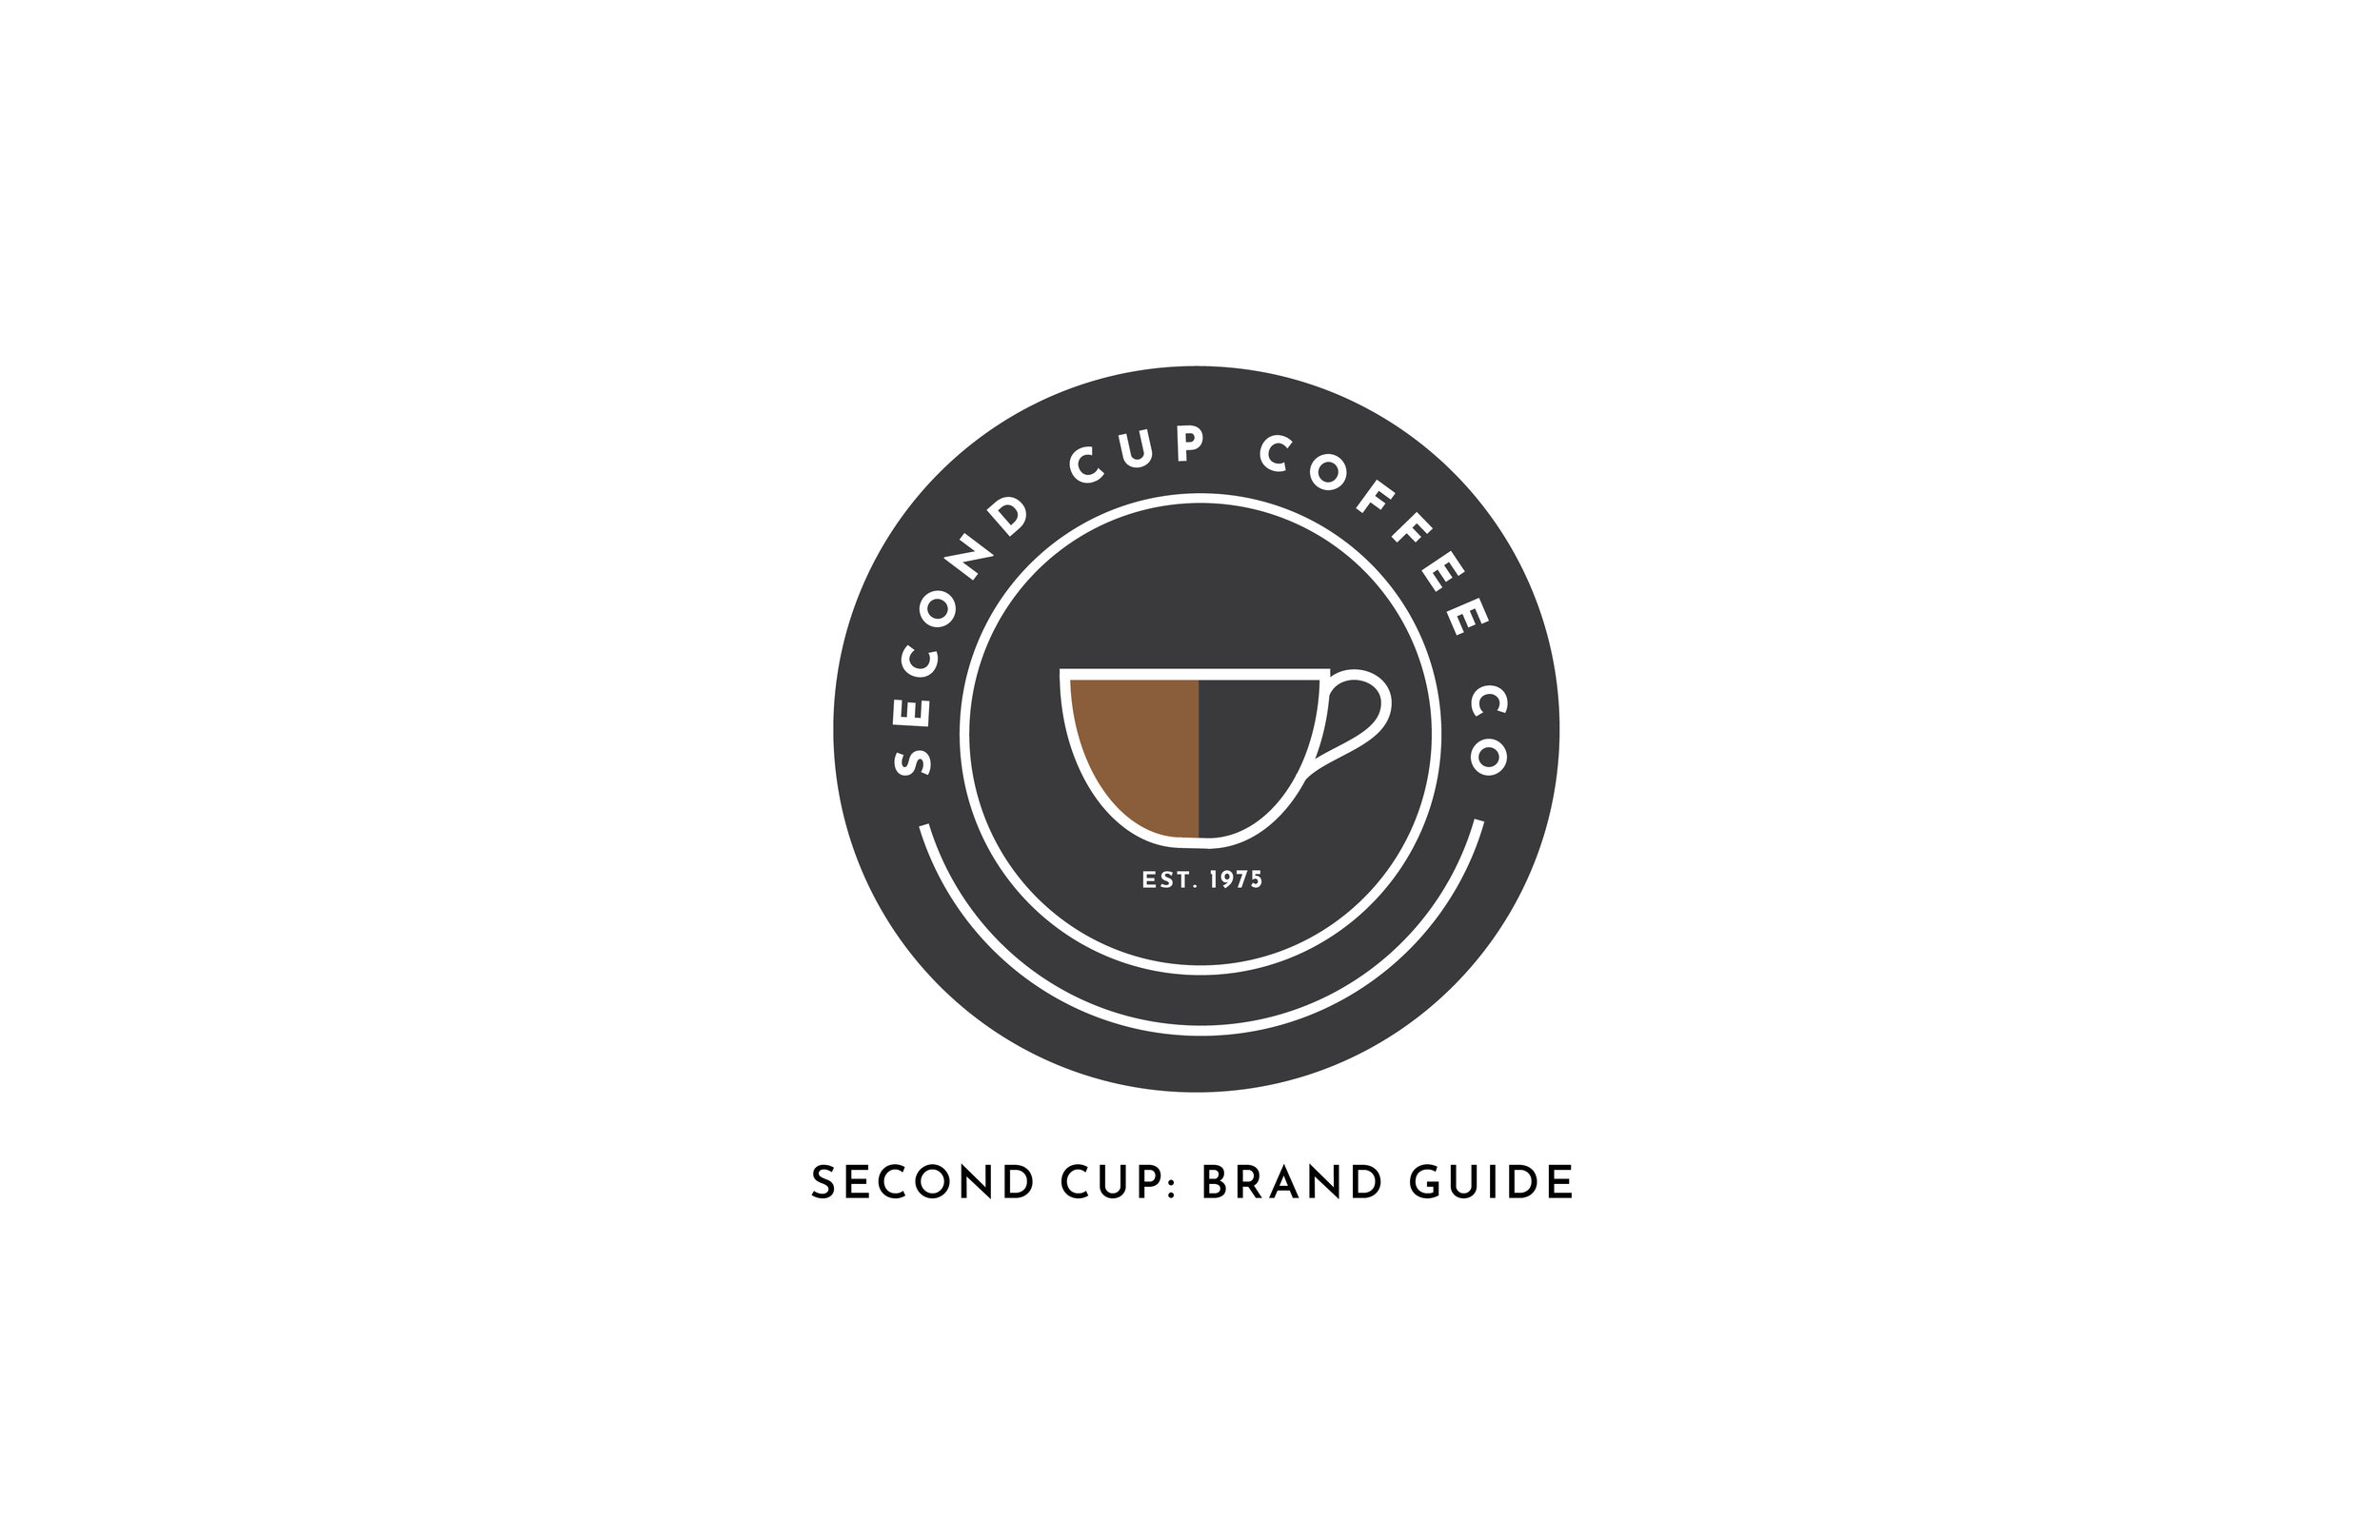 second-cup-brand guide-01.jpg